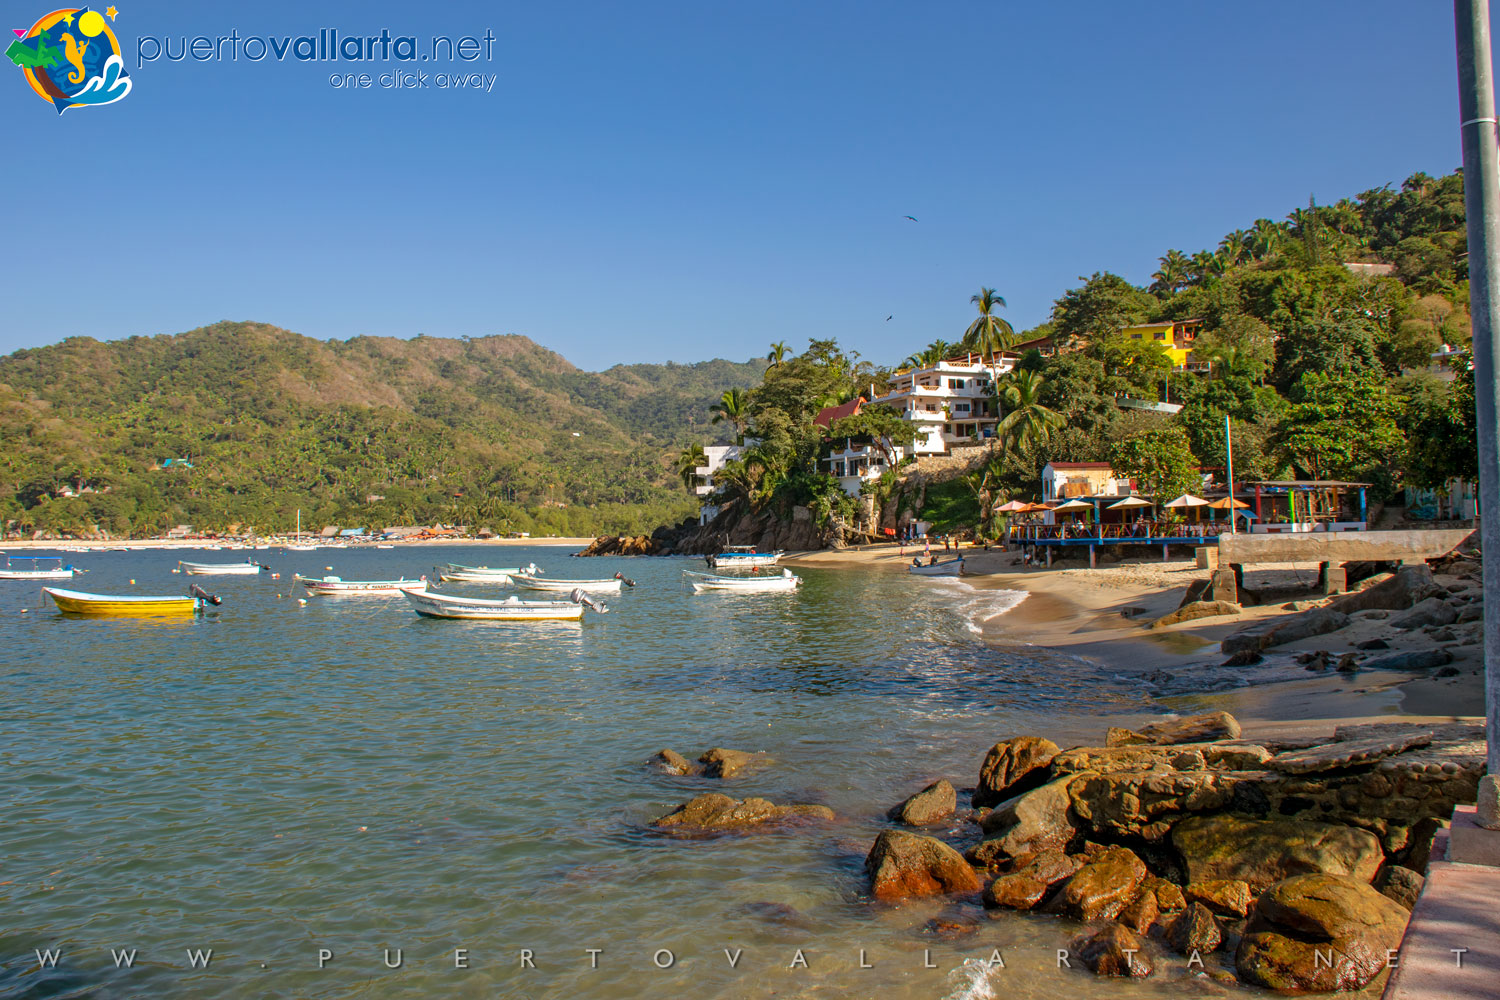 View from the pier in Yelapa